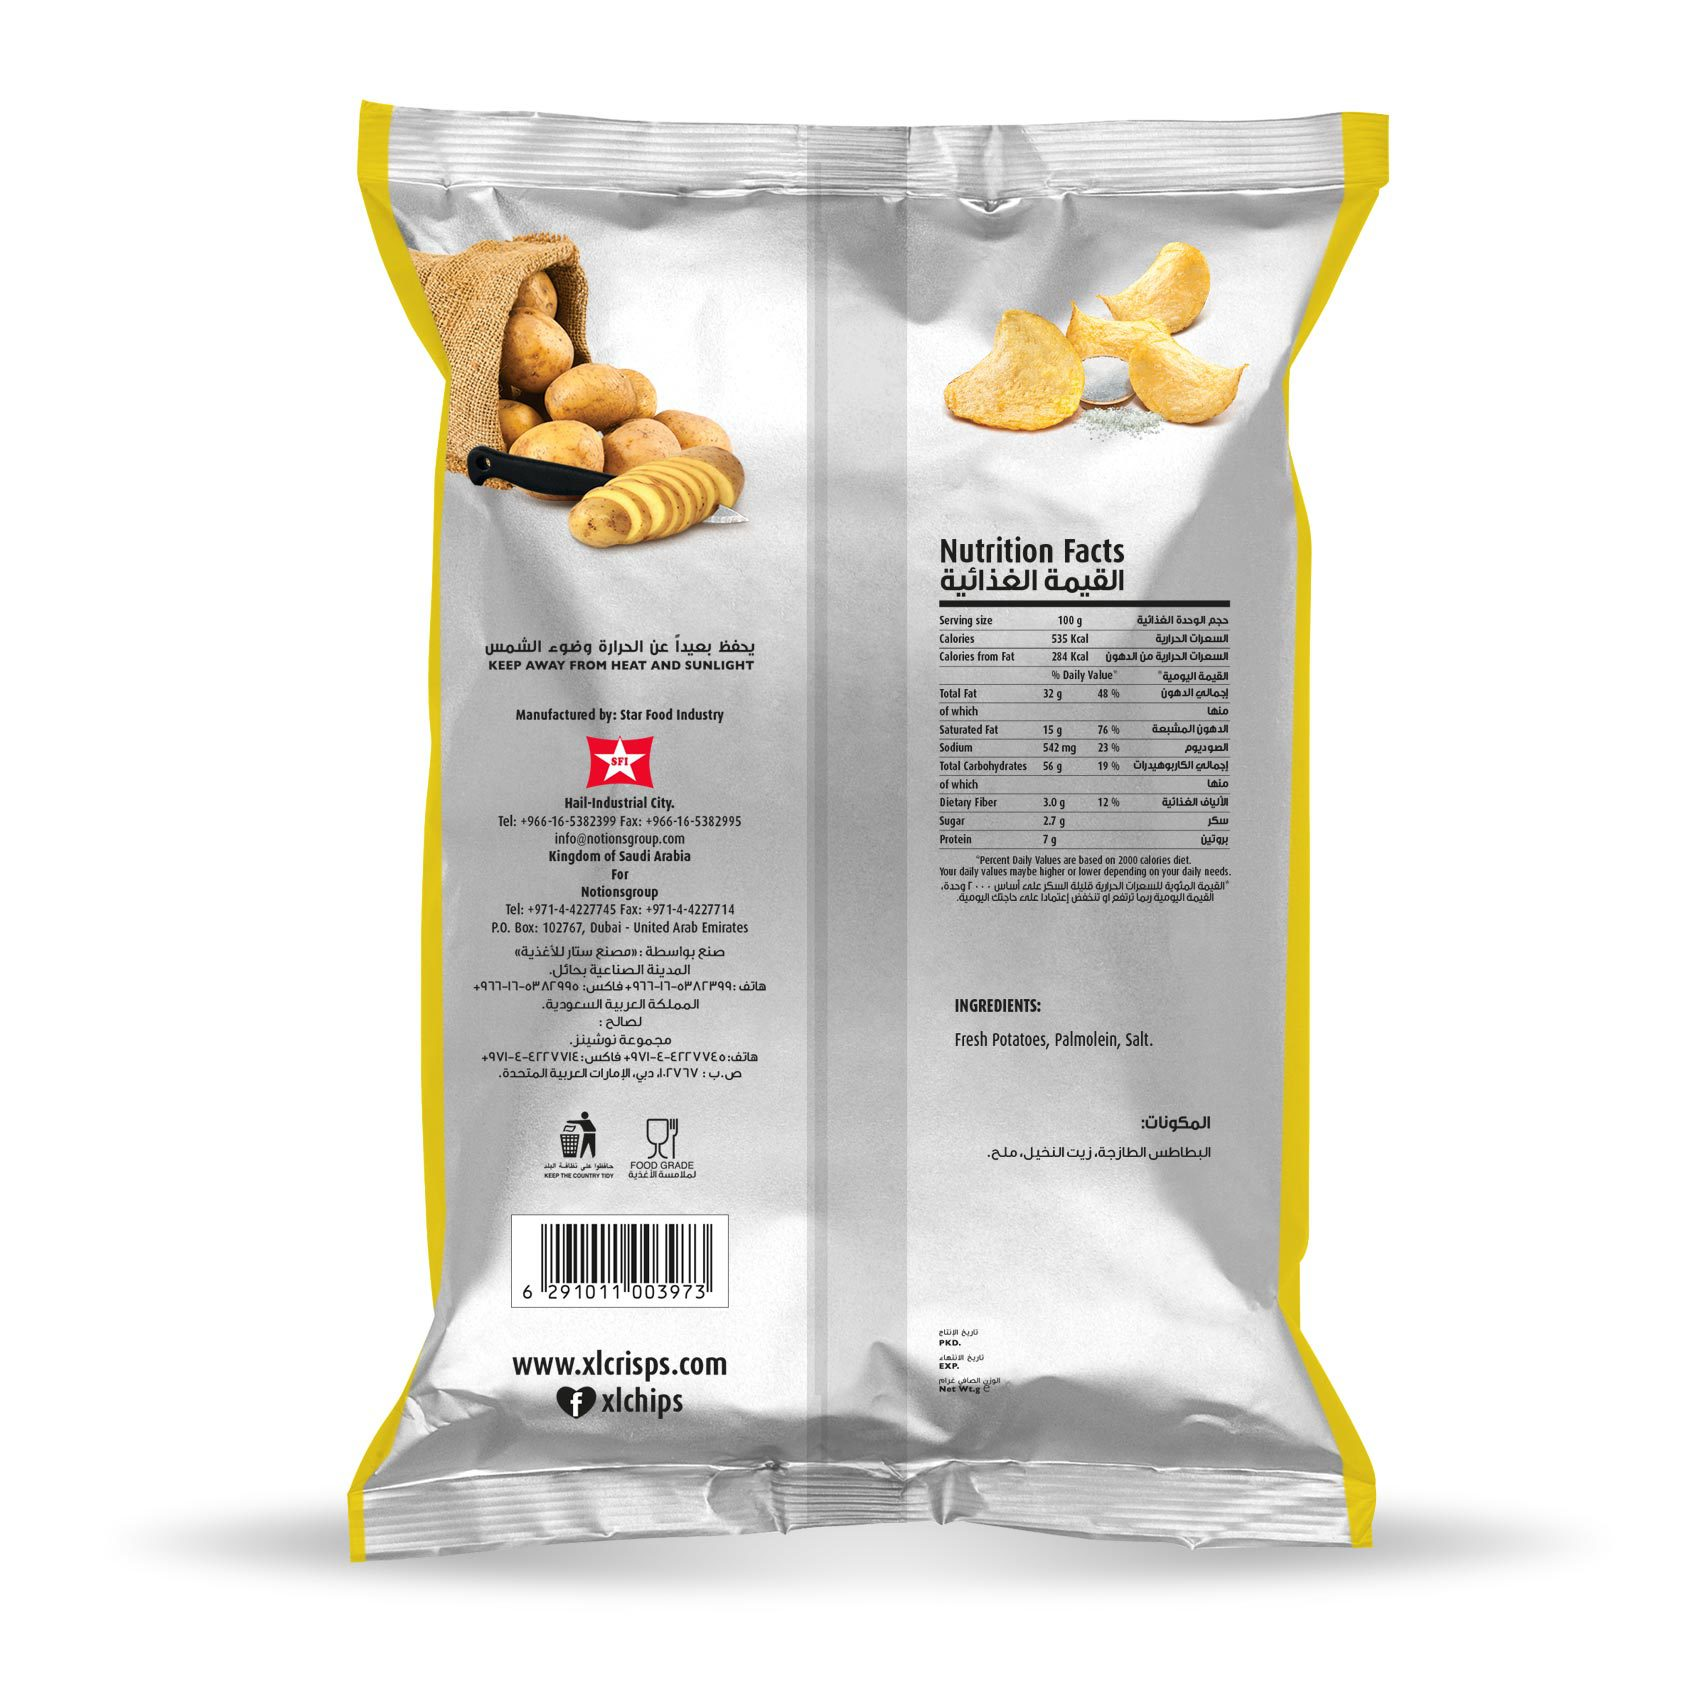 XL CHIPS SALTED 165G